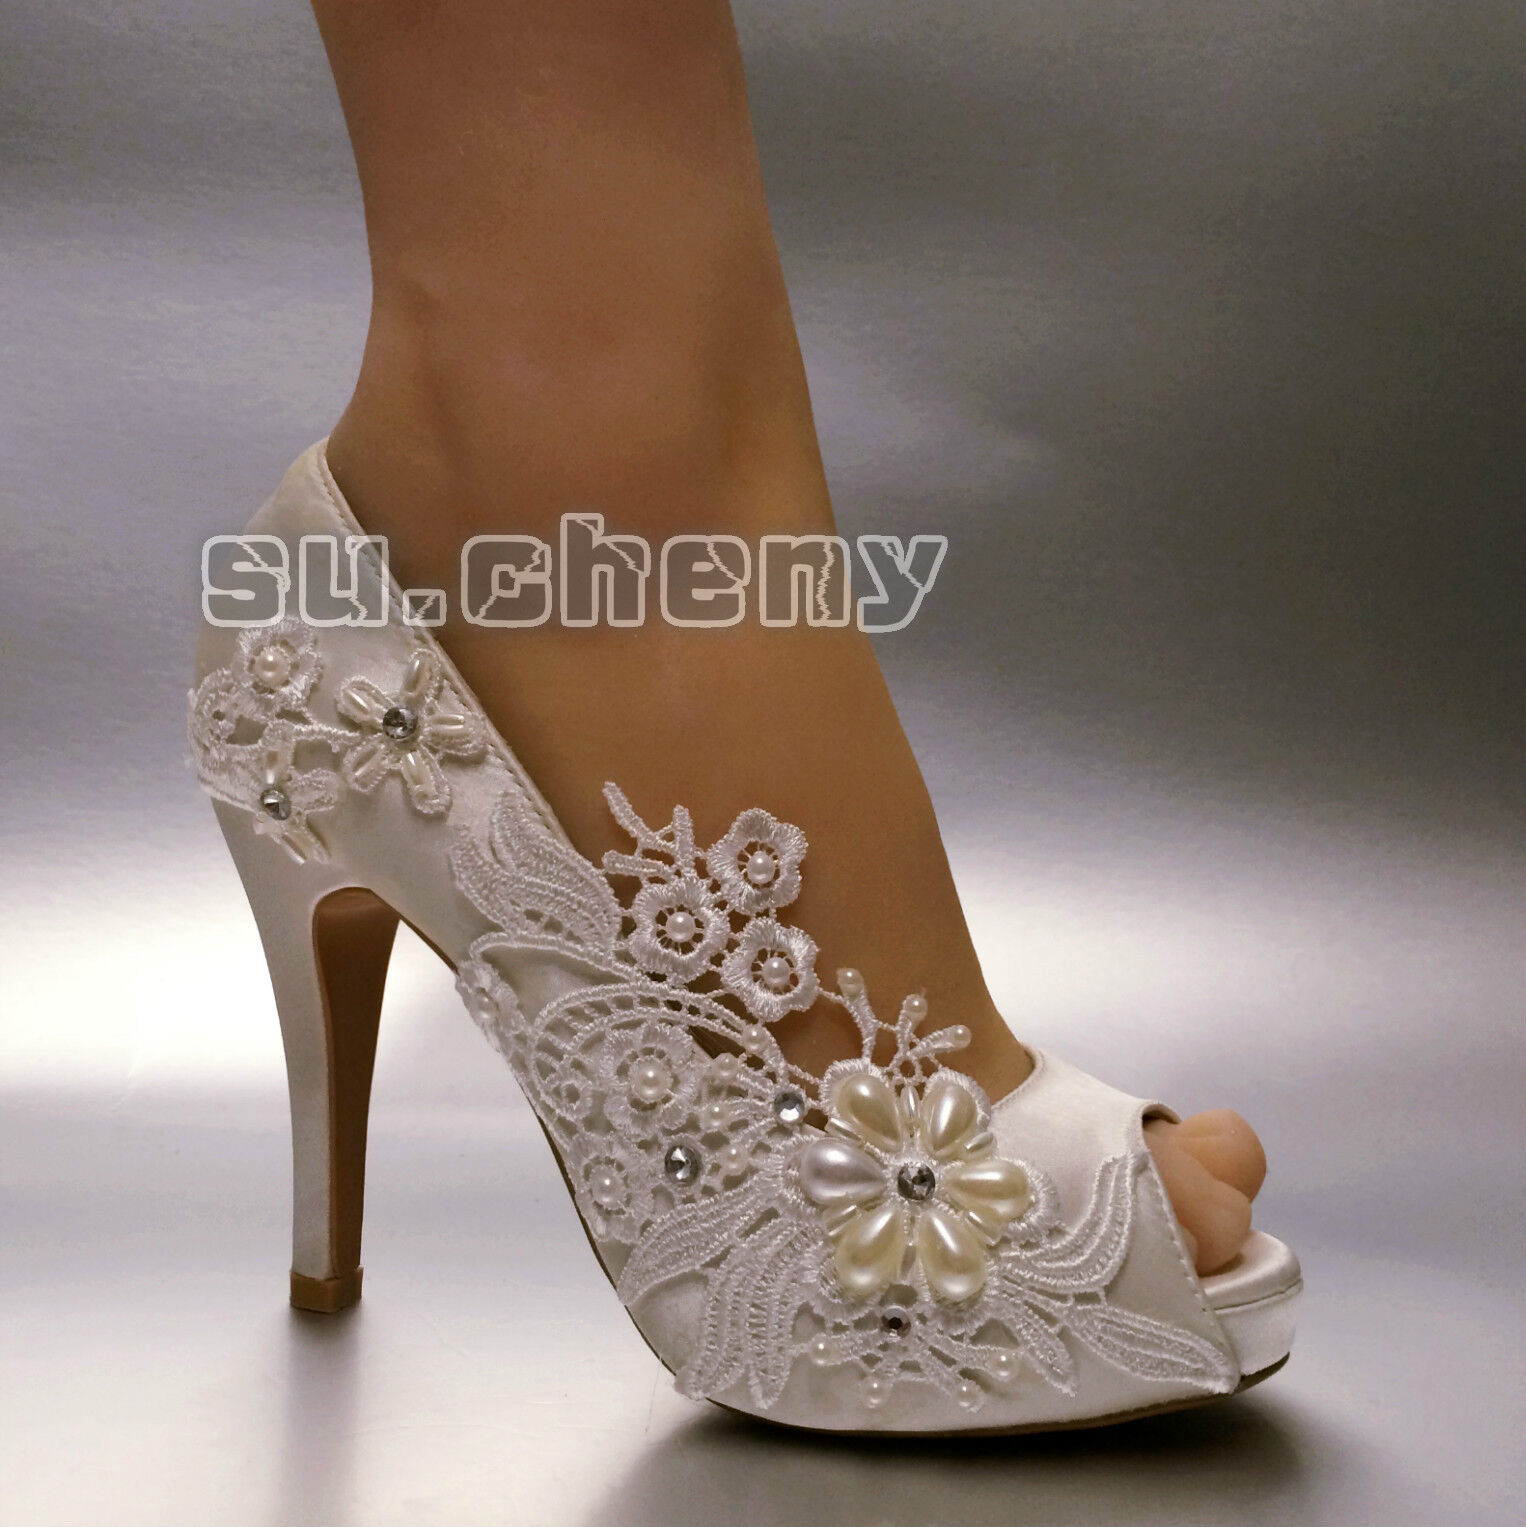 Su.cheny 3  4  heel satin white ivory lace pearls peep toe Wedding Bridal shoes